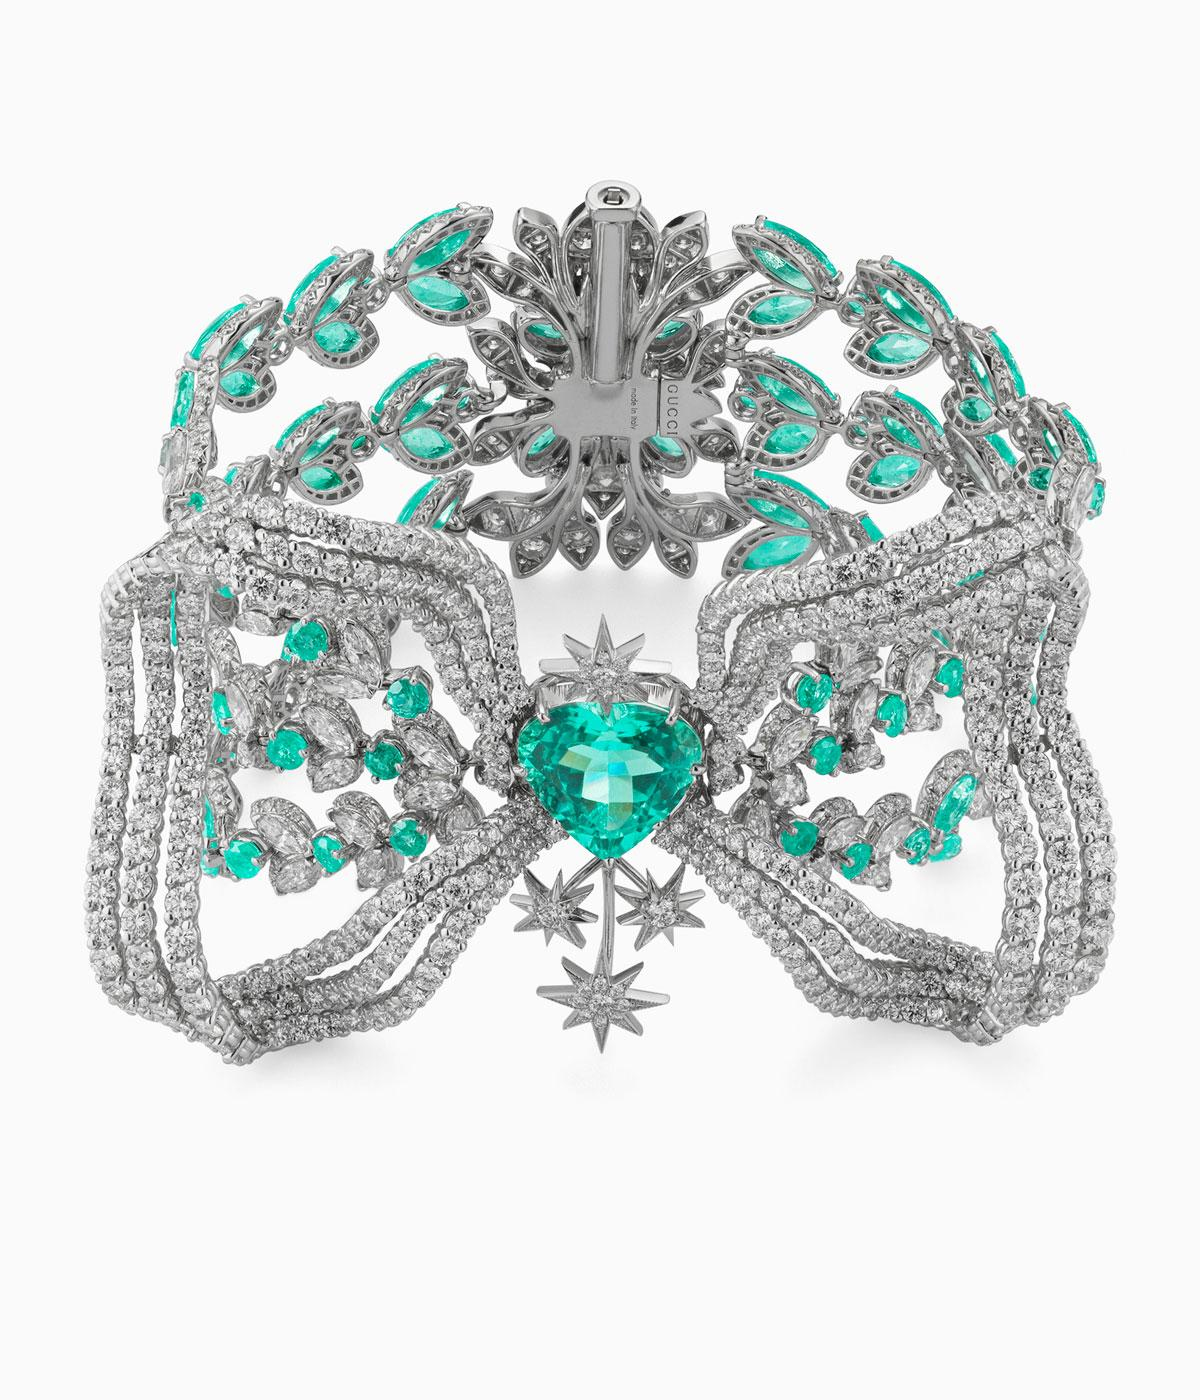 Gucci high jewellery diamond necklace with pale blue stones